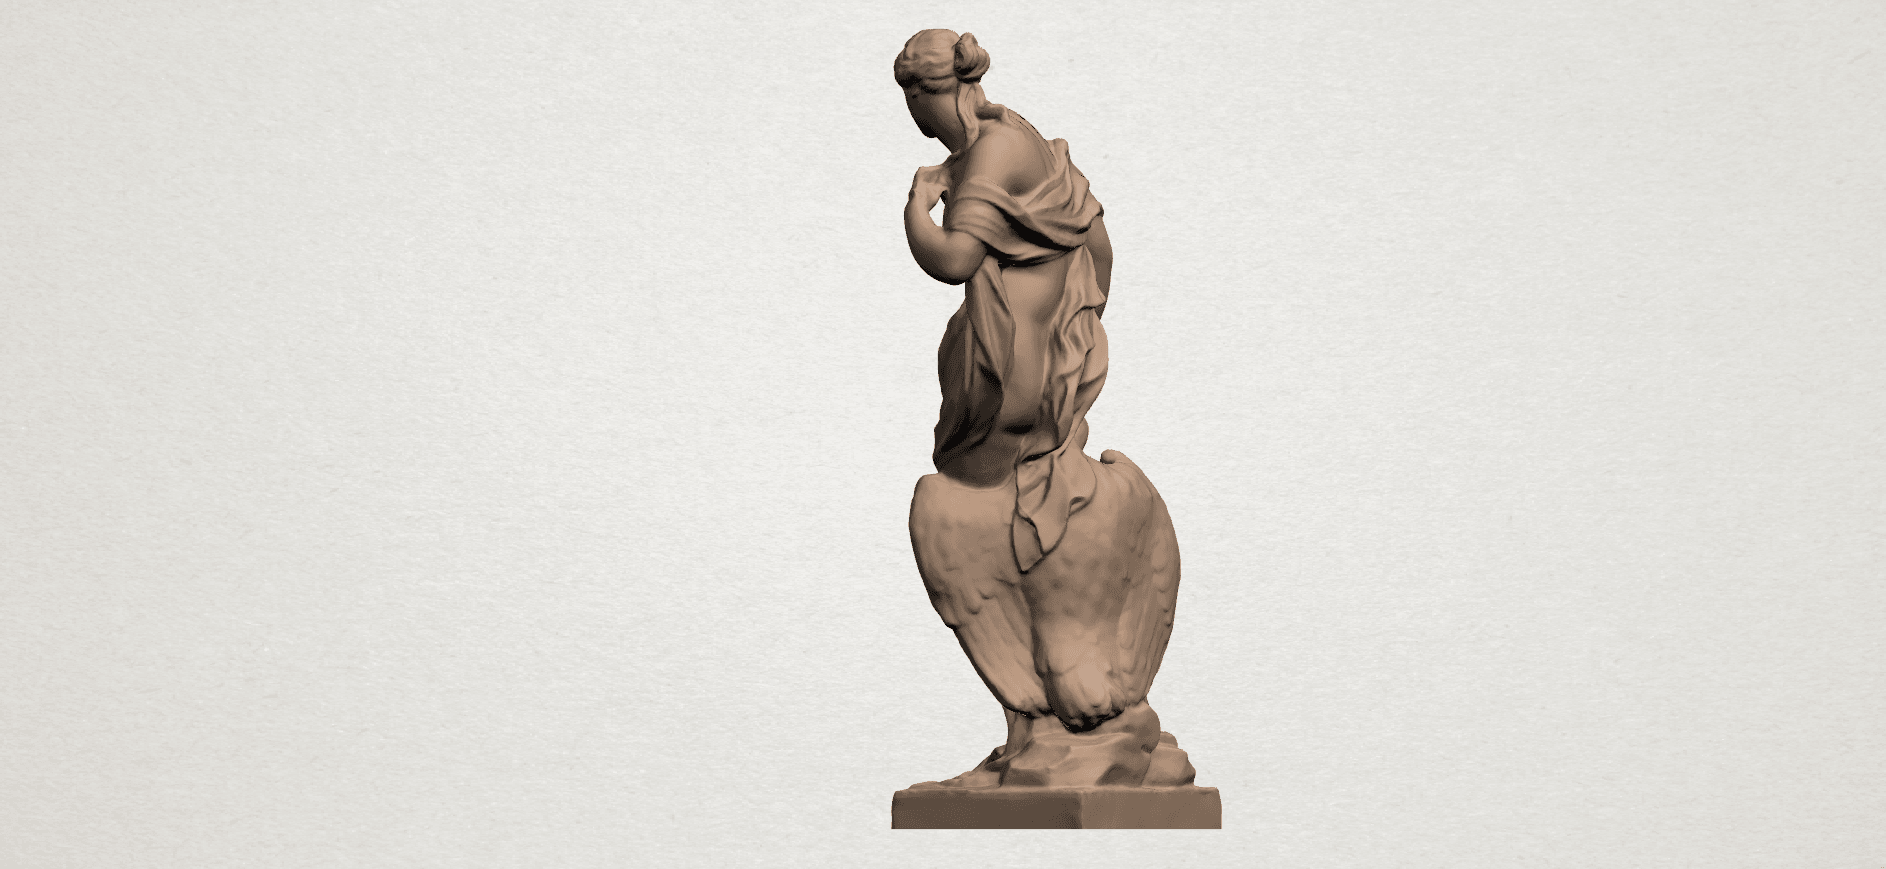 Naked Girl with Goose A03.png Download free STL file Naked Girl with Goose • 3D print template, GeorgesNikkei